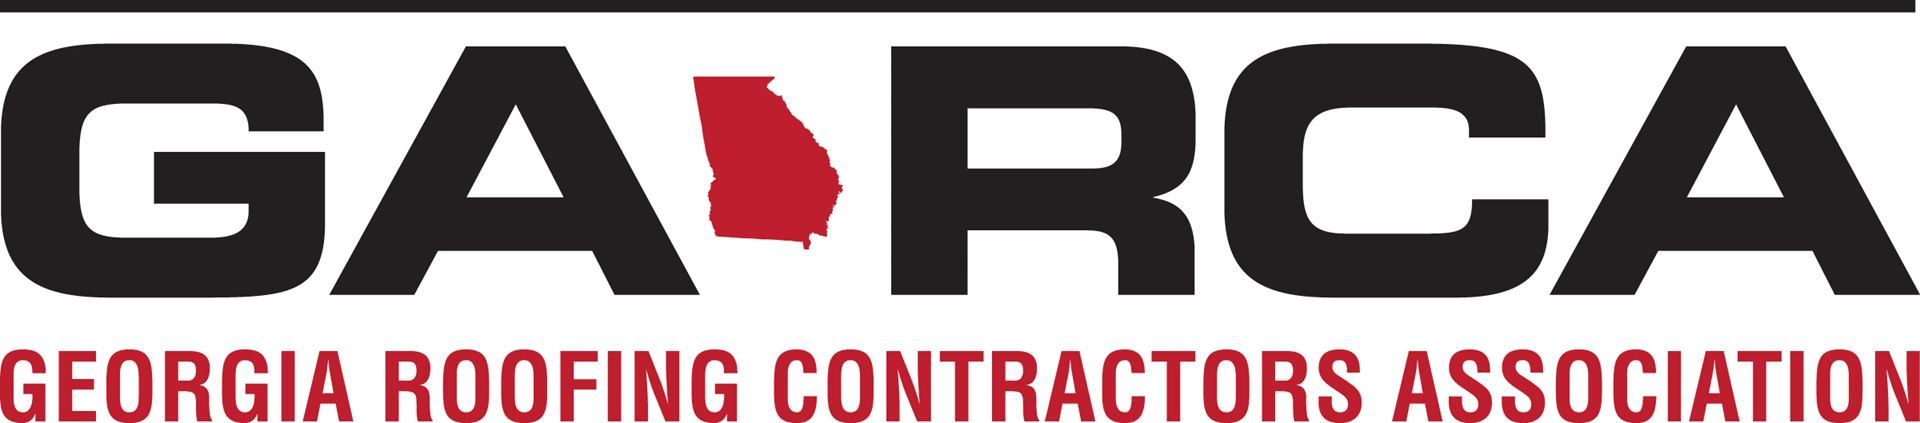 Georgia Roofing Contractors Association Garca Home